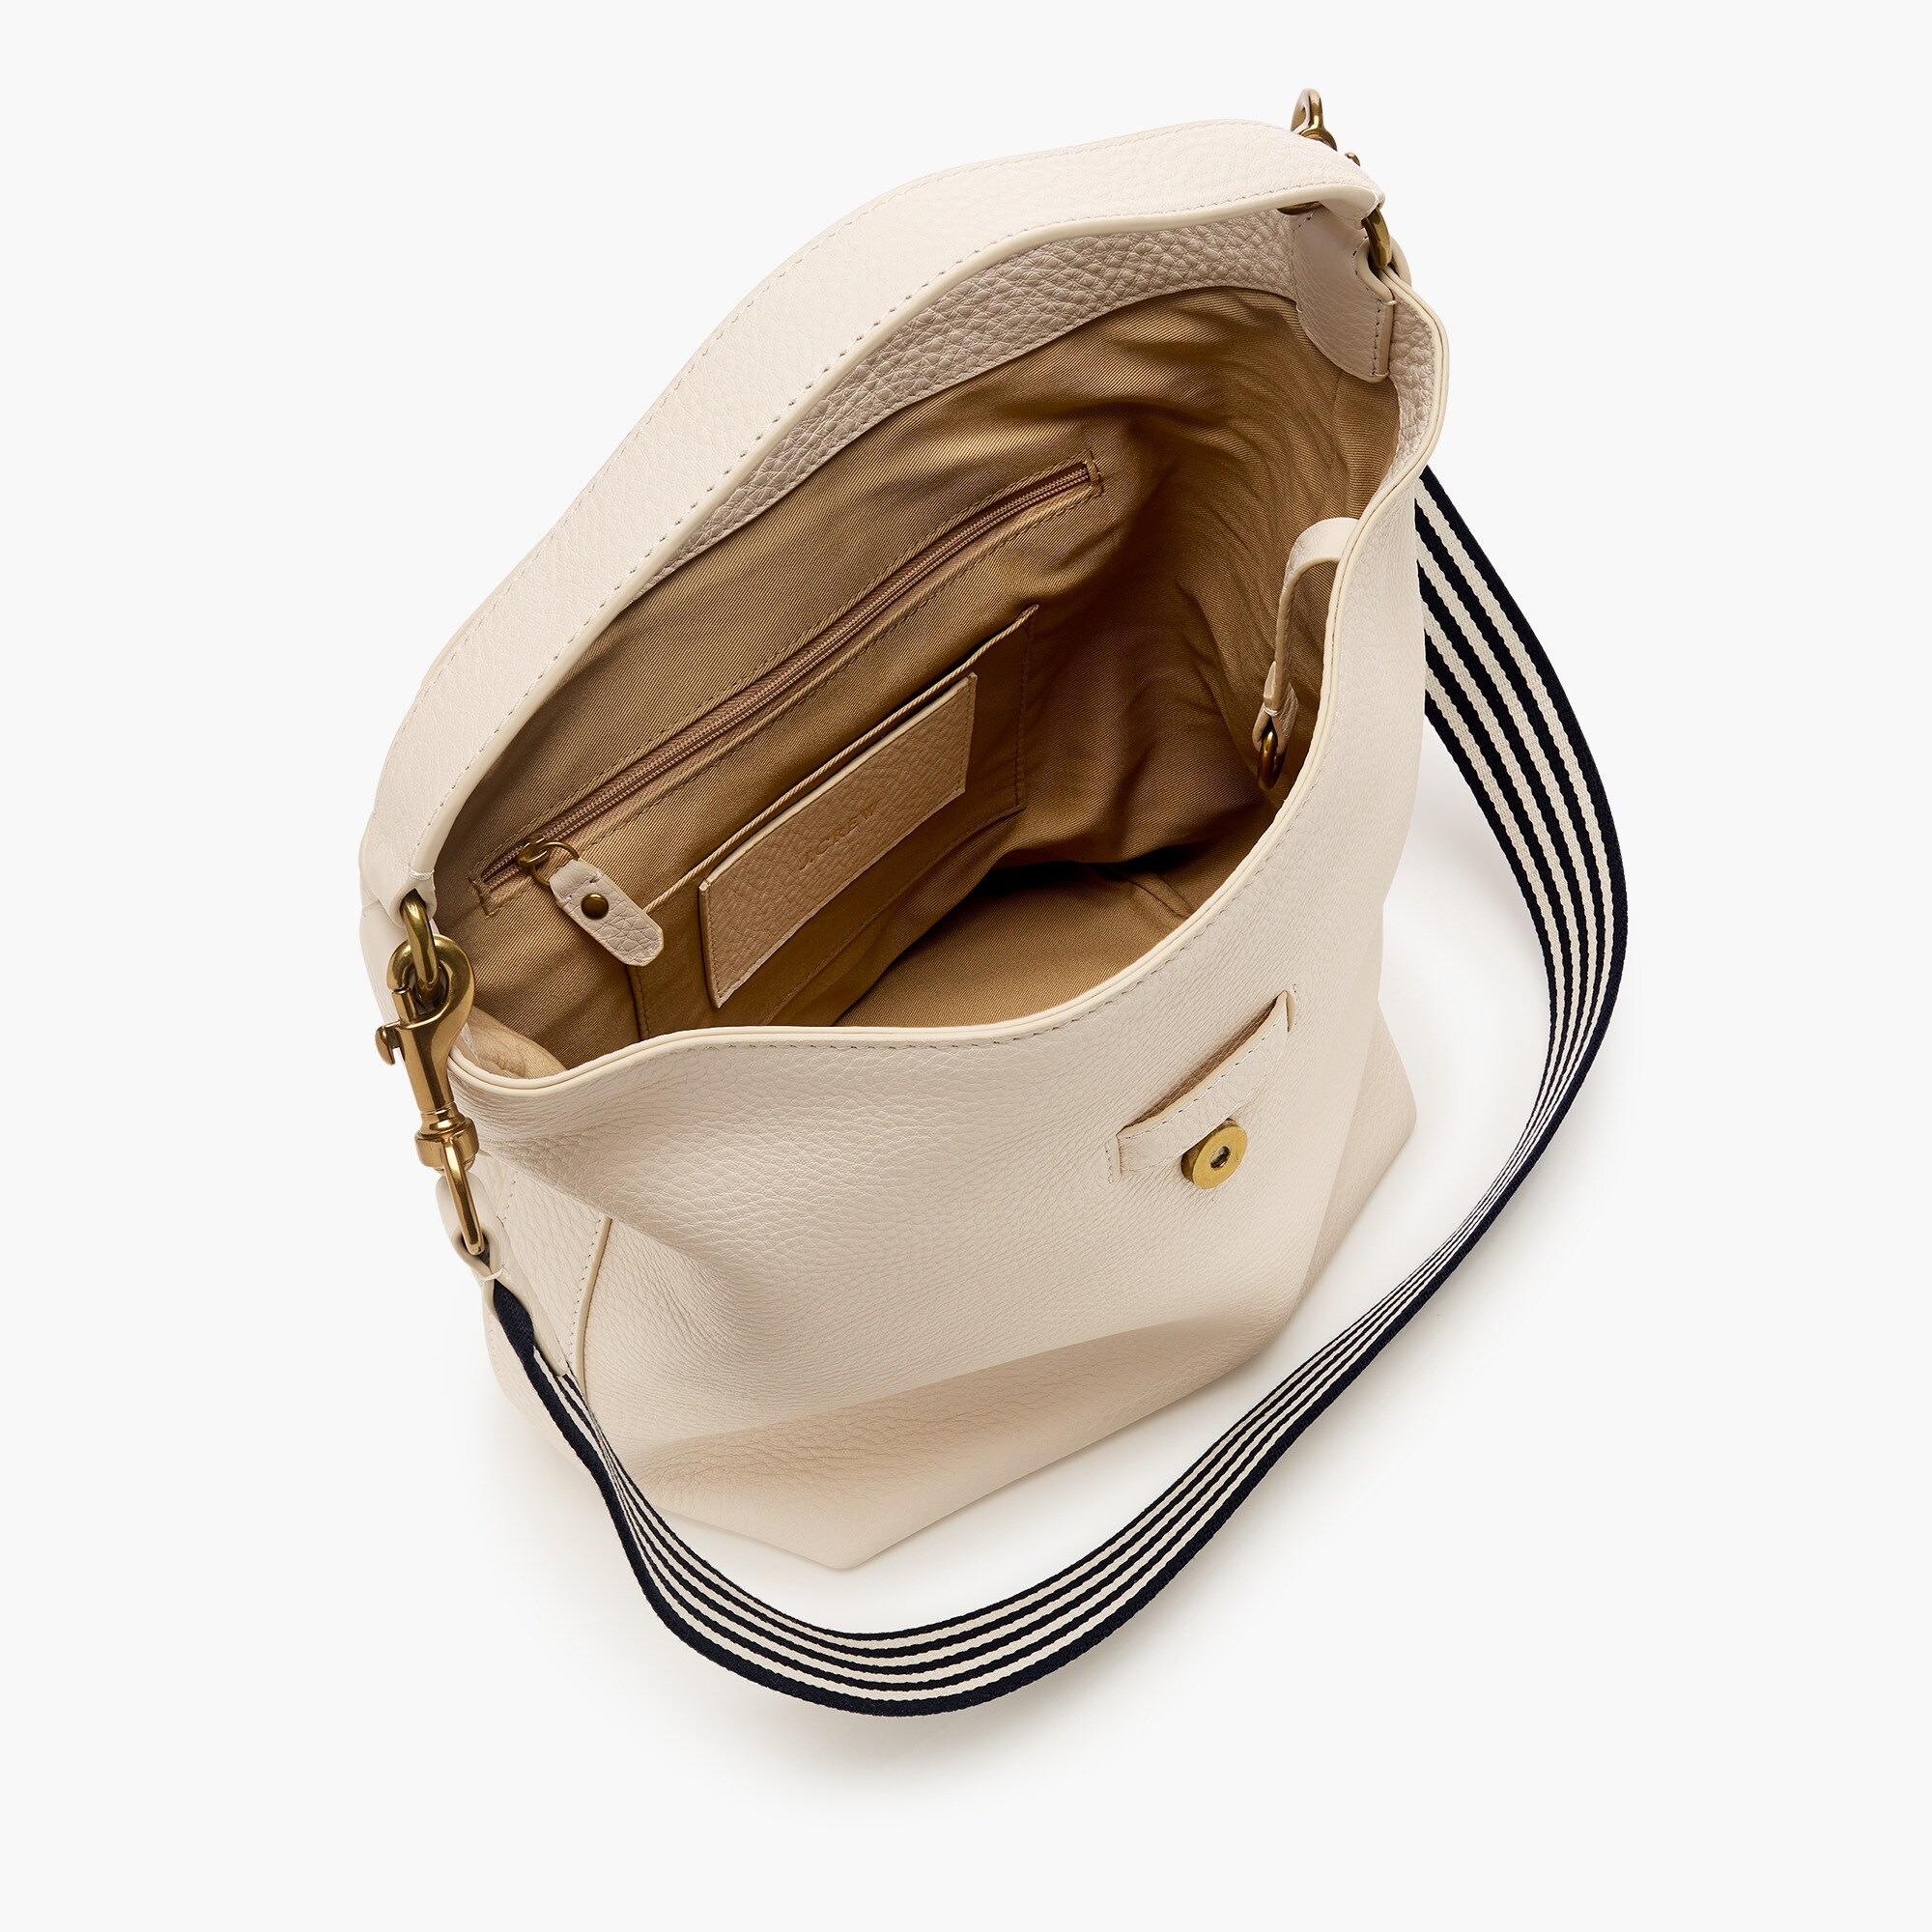 Signet hobo bag in Italian leather